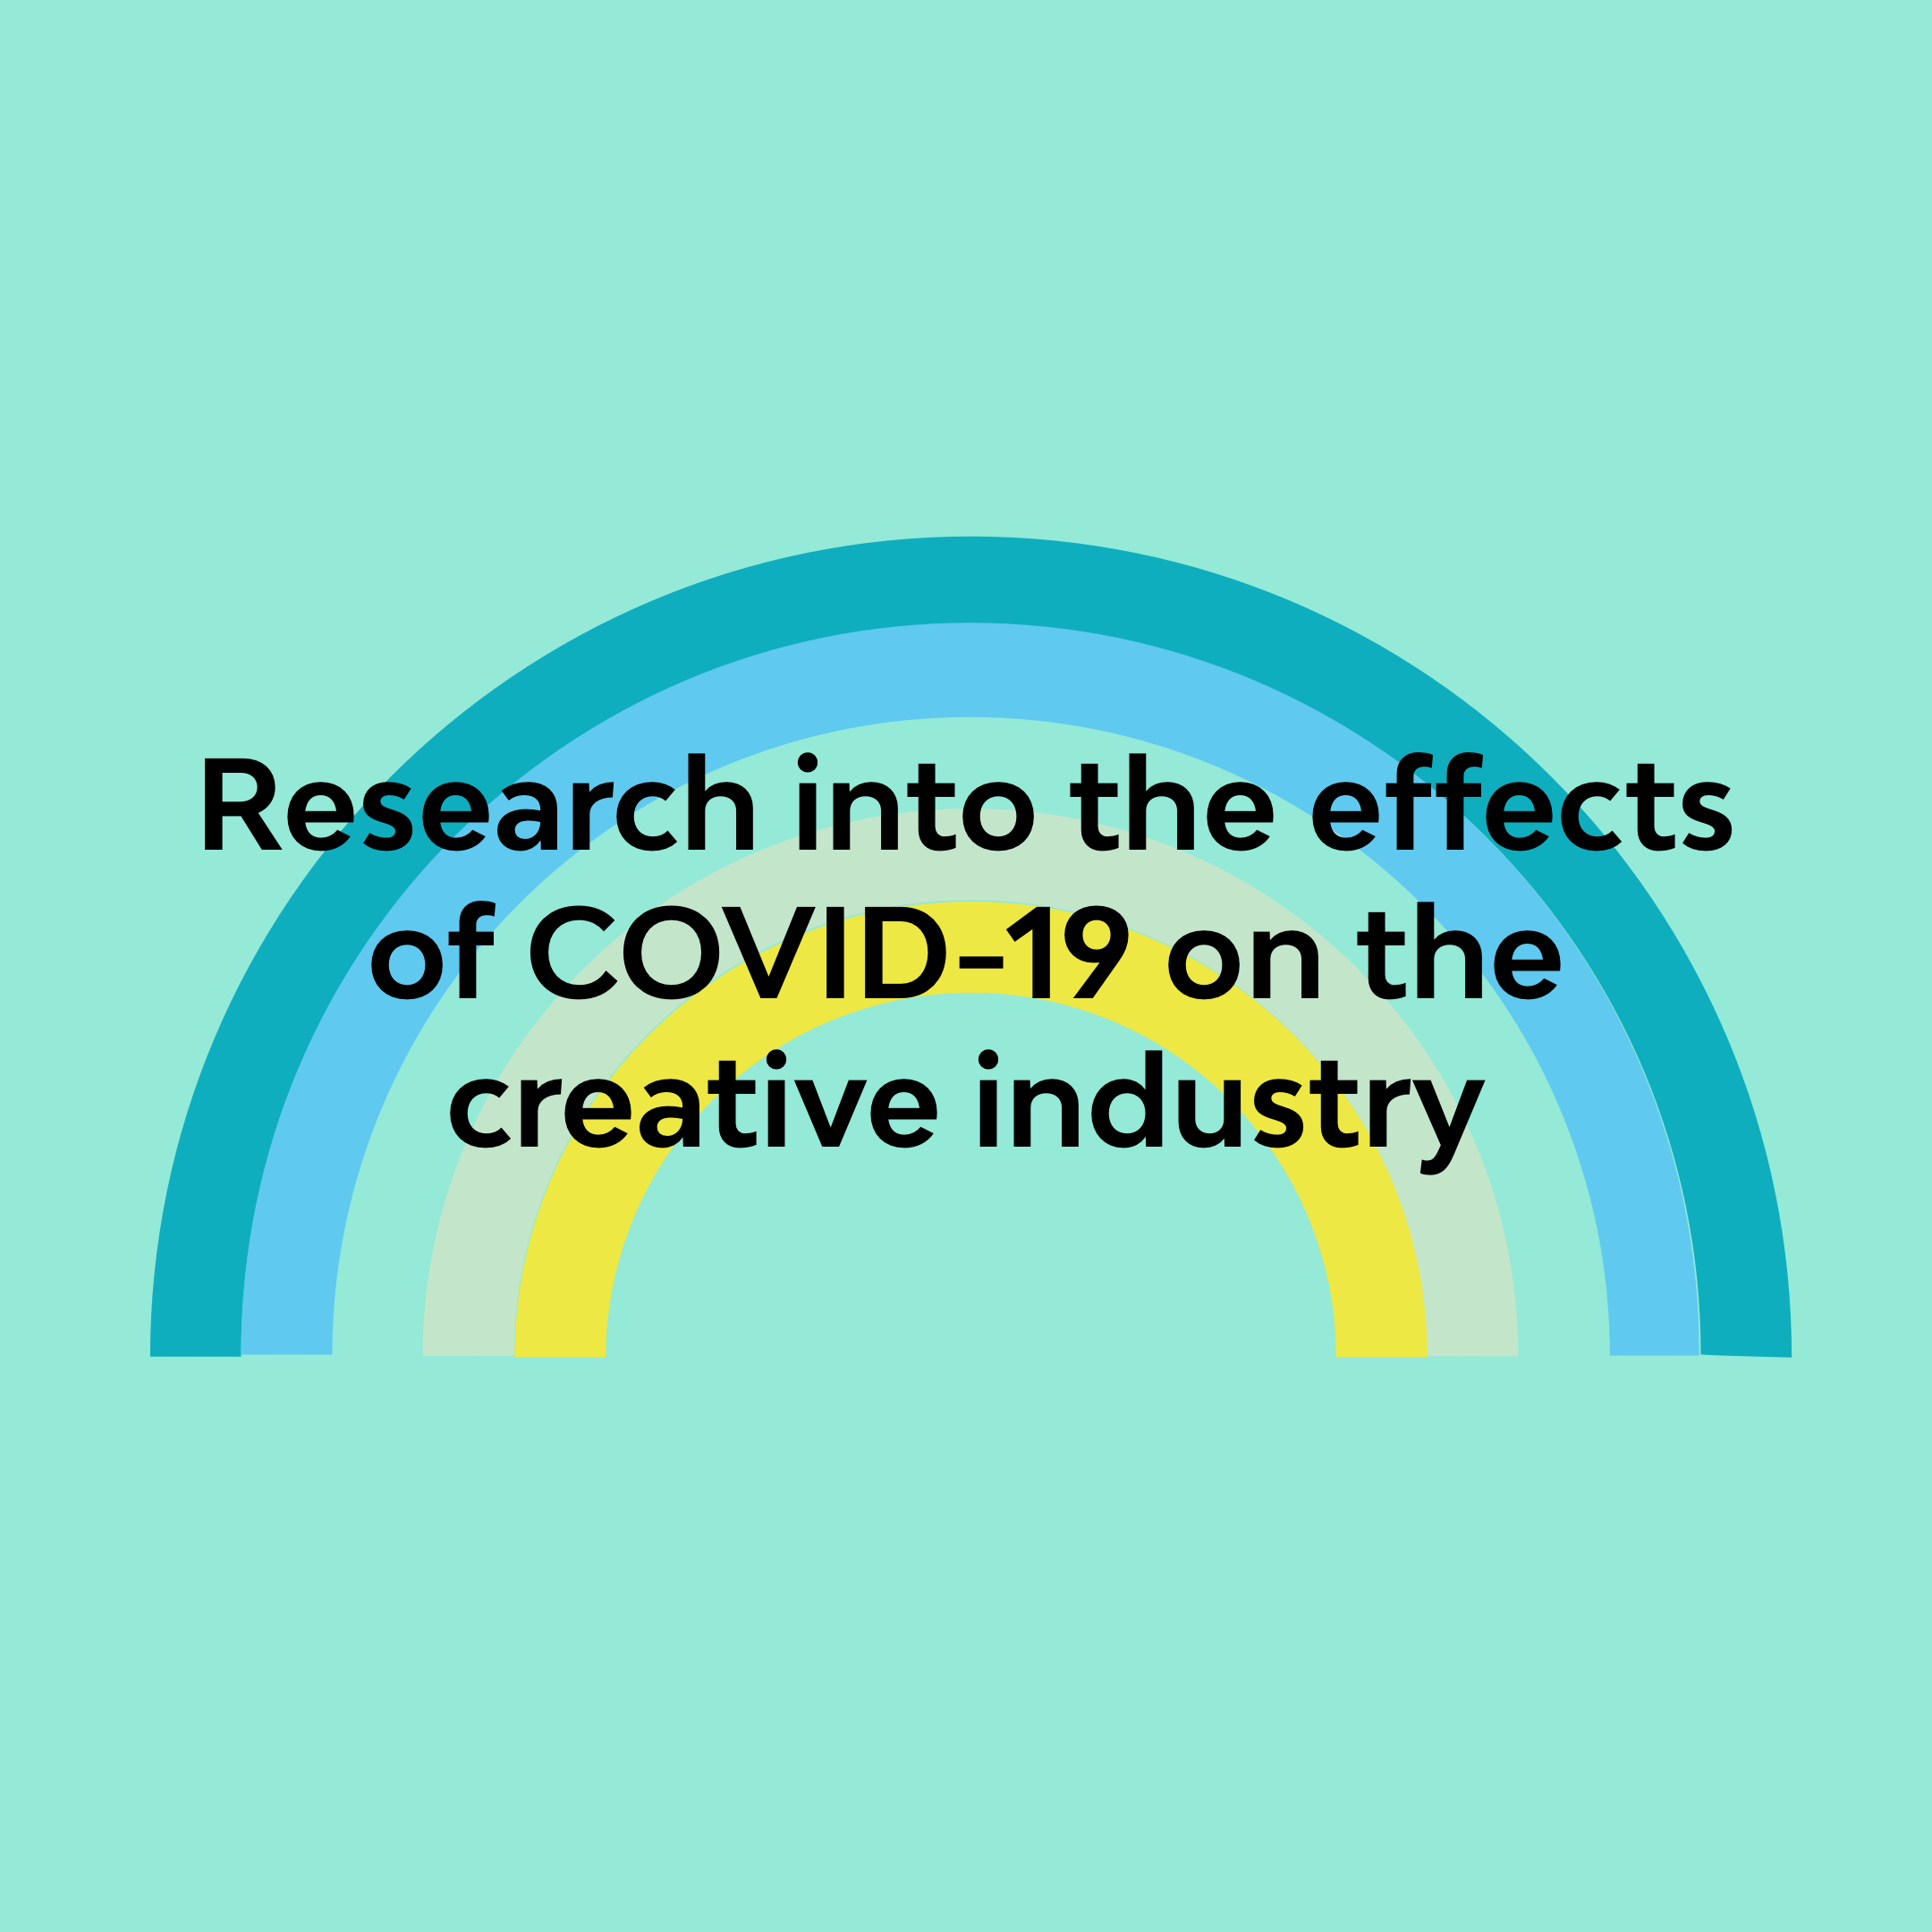 Research into the effects of covid-19 on the creative industry